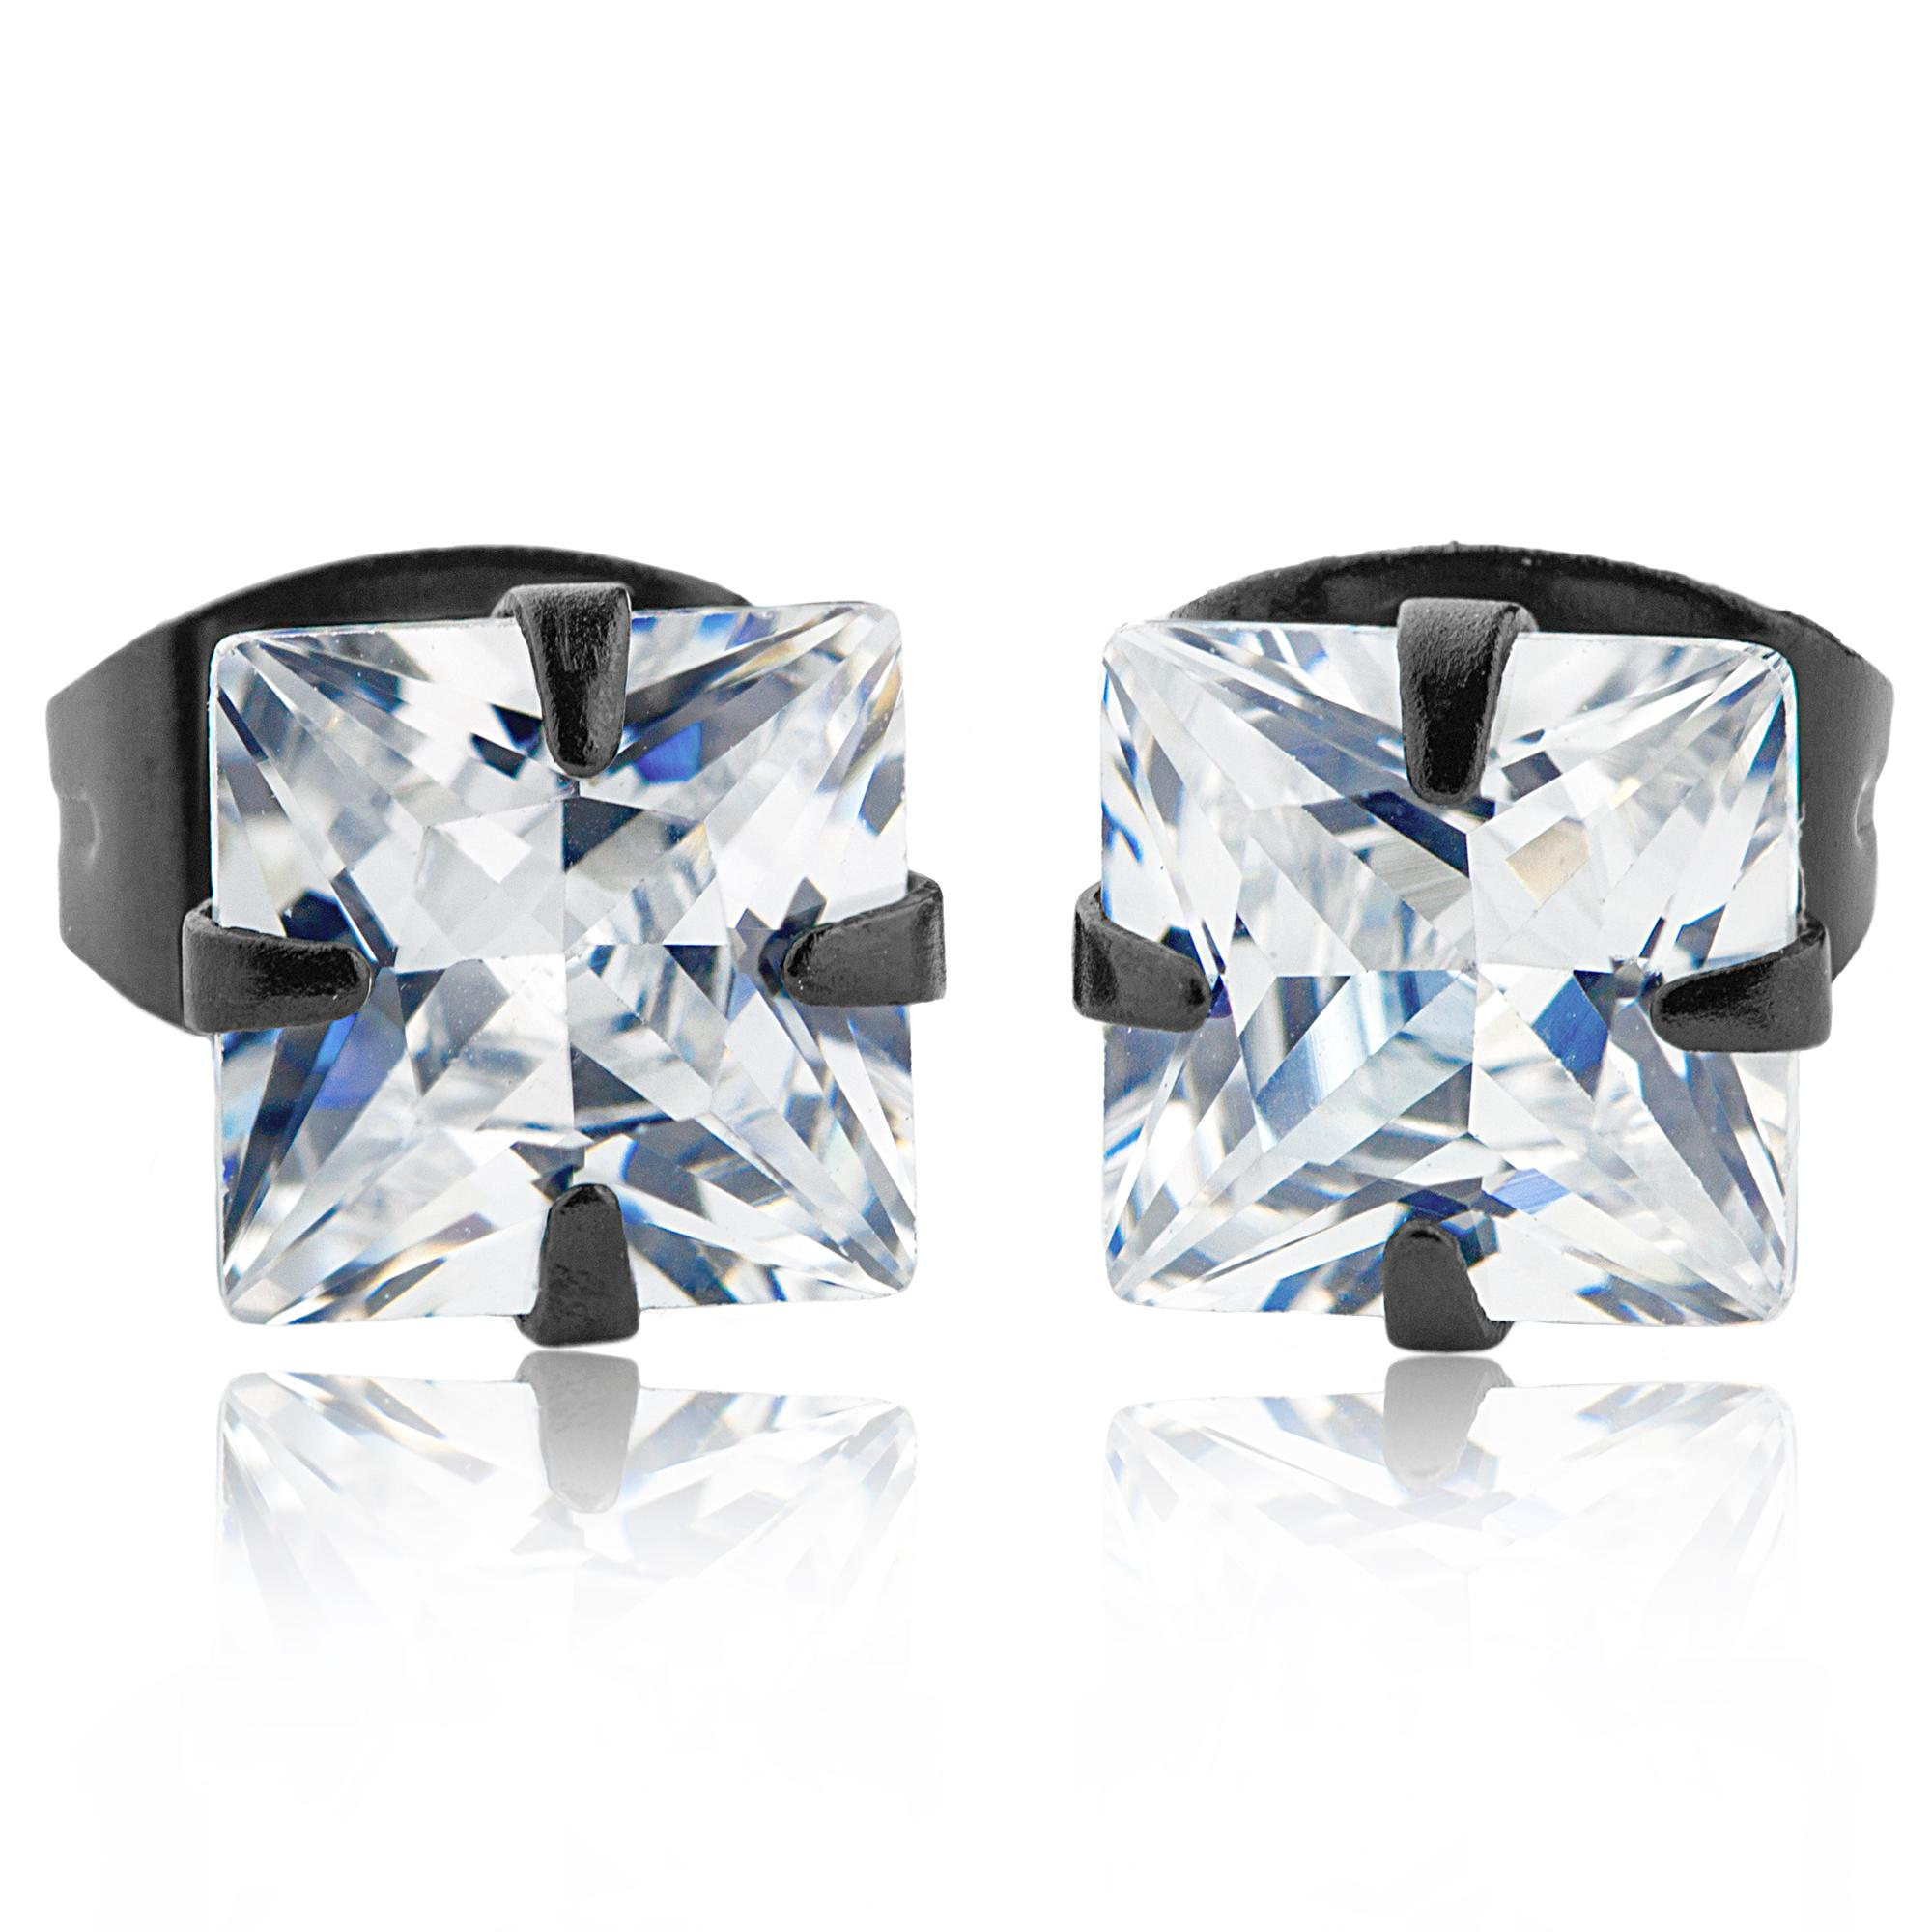 Black Plated Stainless Steel Stud Earrings with Princess Cut Clear CZ - 5 mm